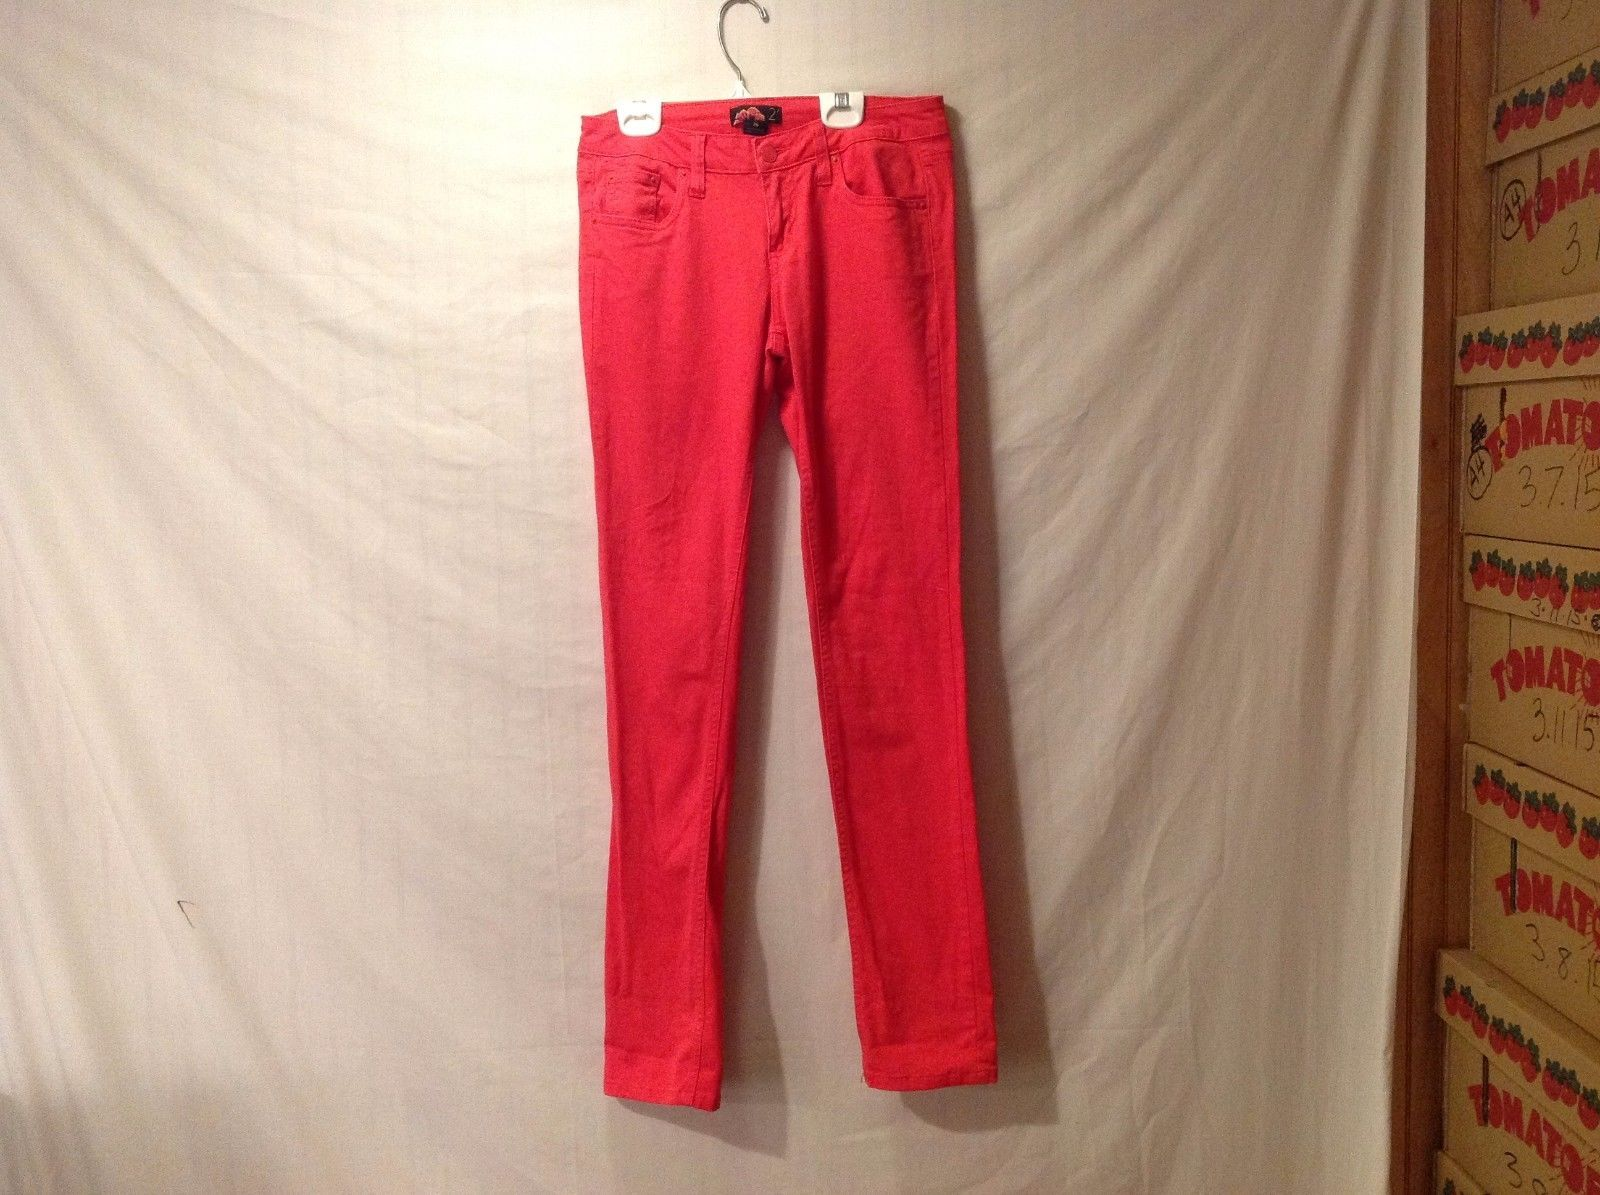 Preowned Excellent Condition Forever 21 Bright Red Jeans Size 26 Skinny Leg